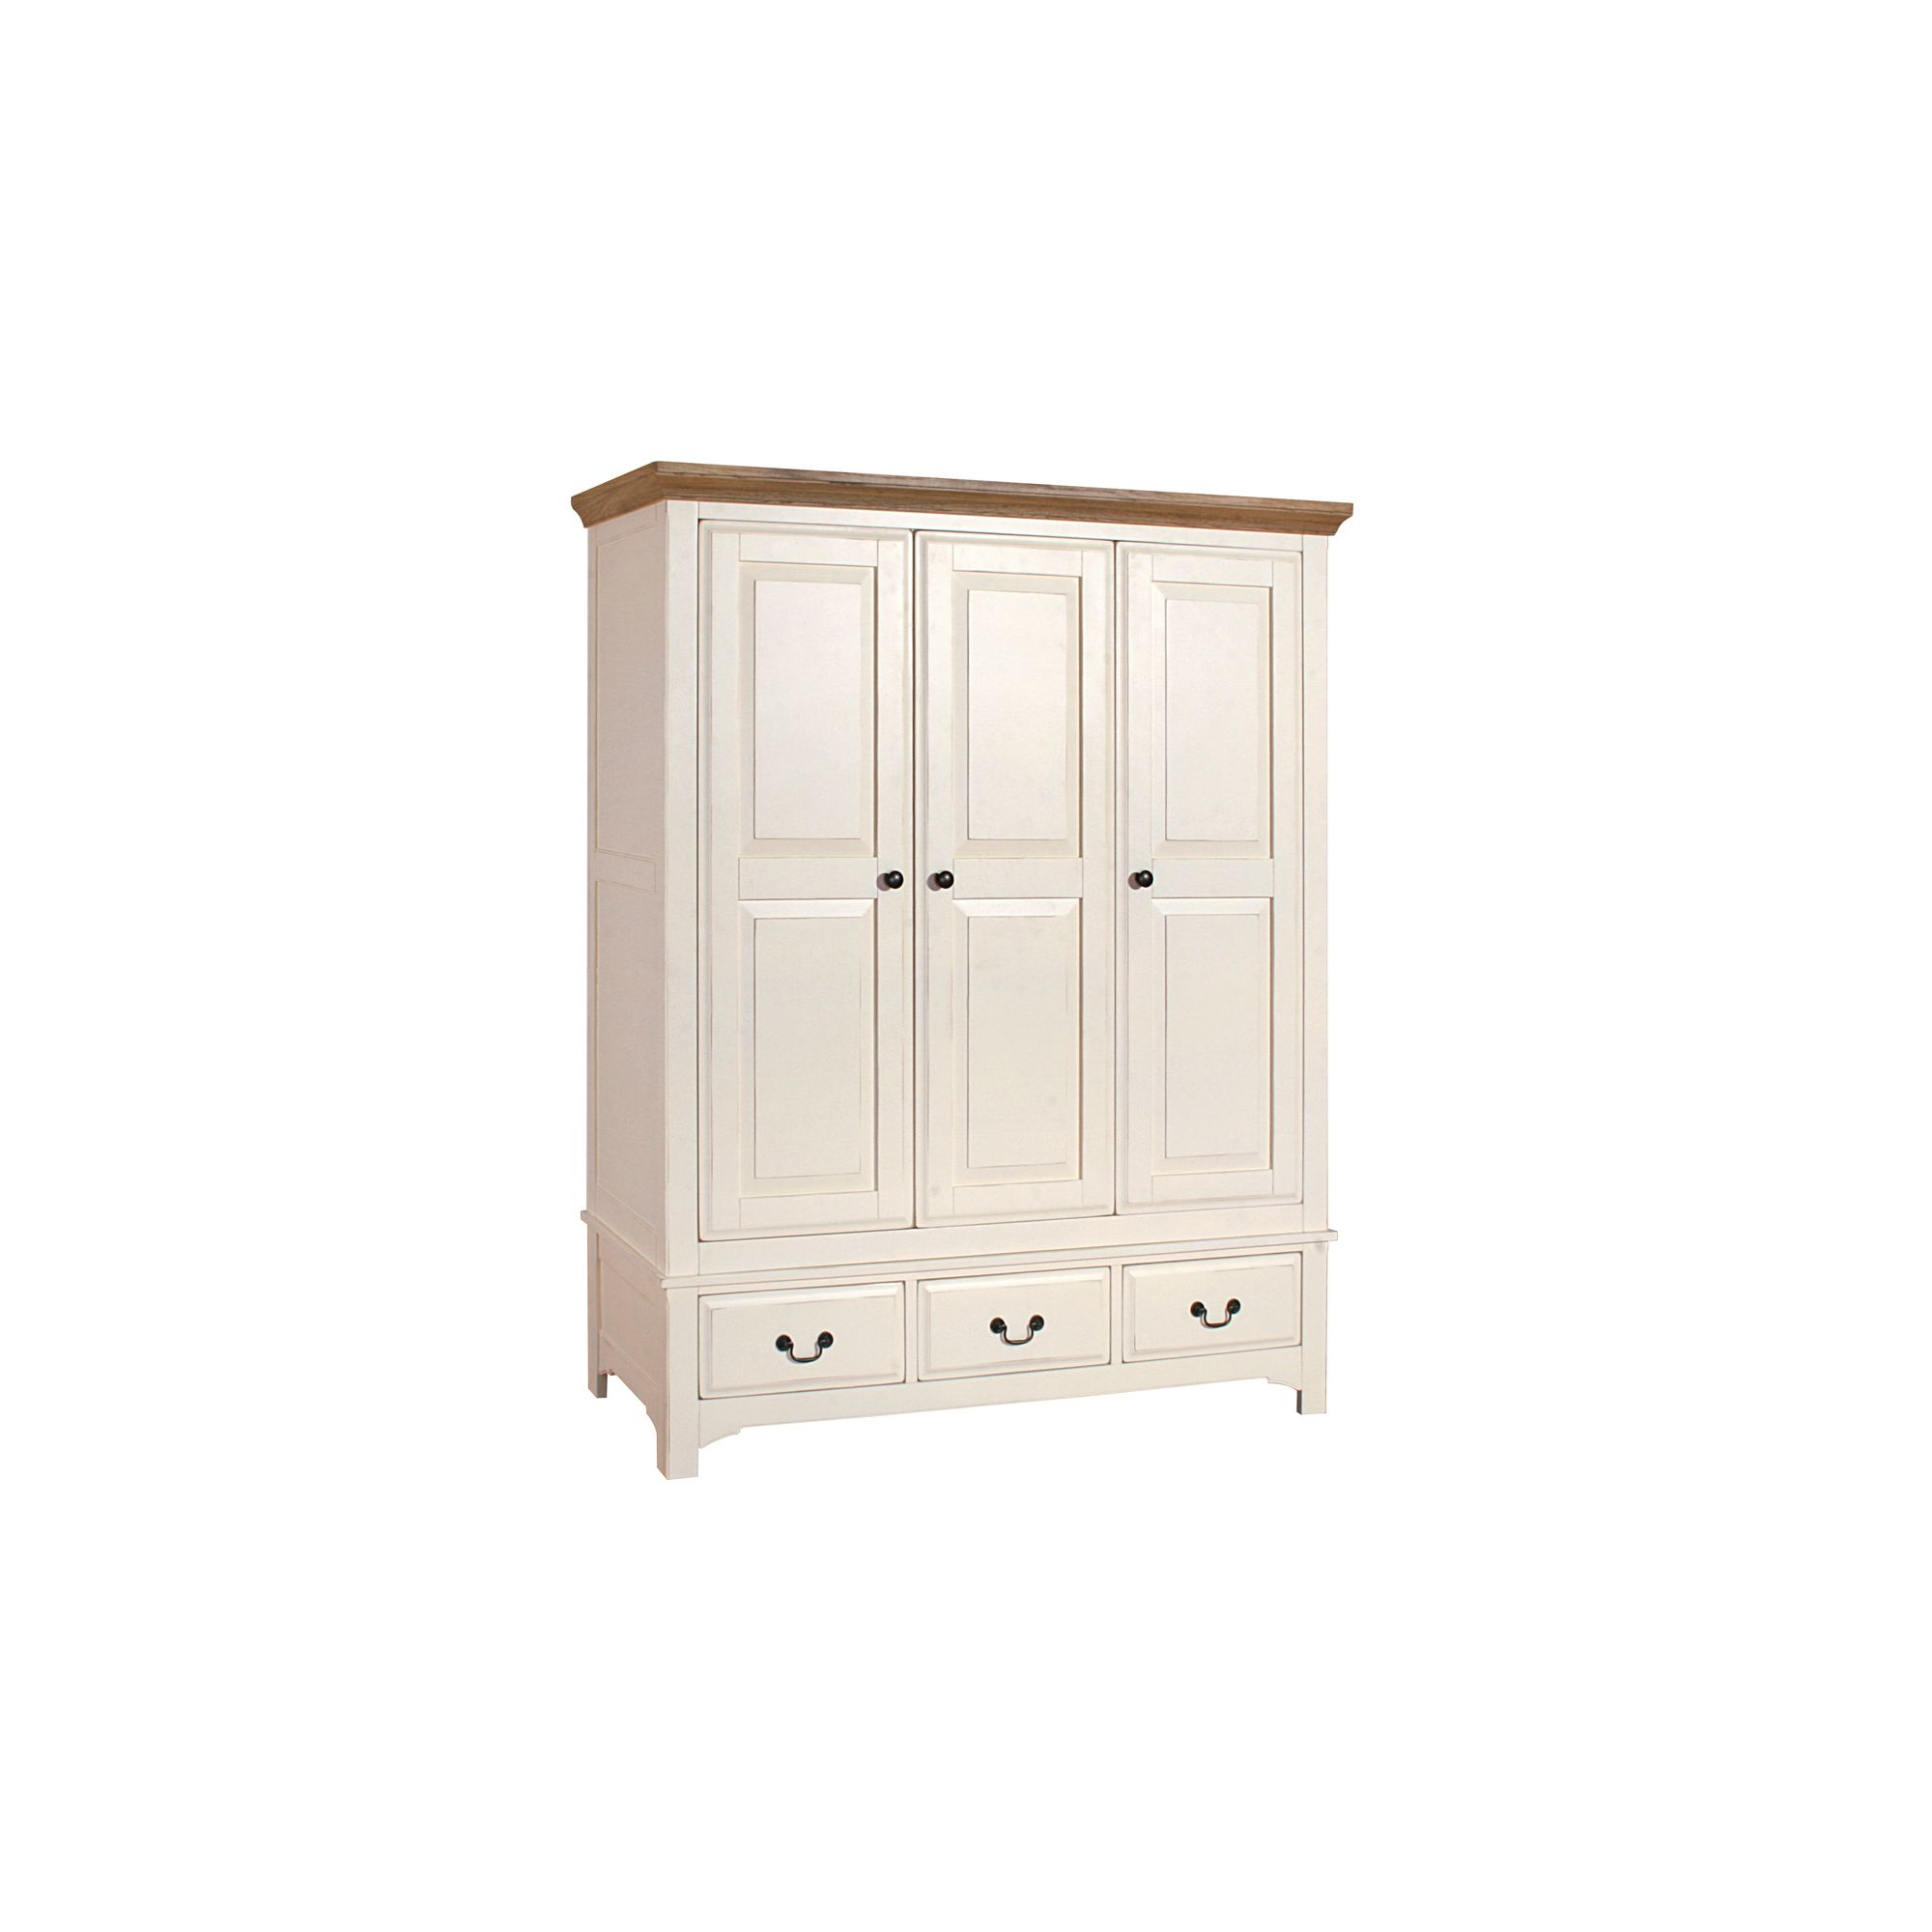 Alterton Furniture Marseille Triple Wardrobe with Drawer at Tesco Direct